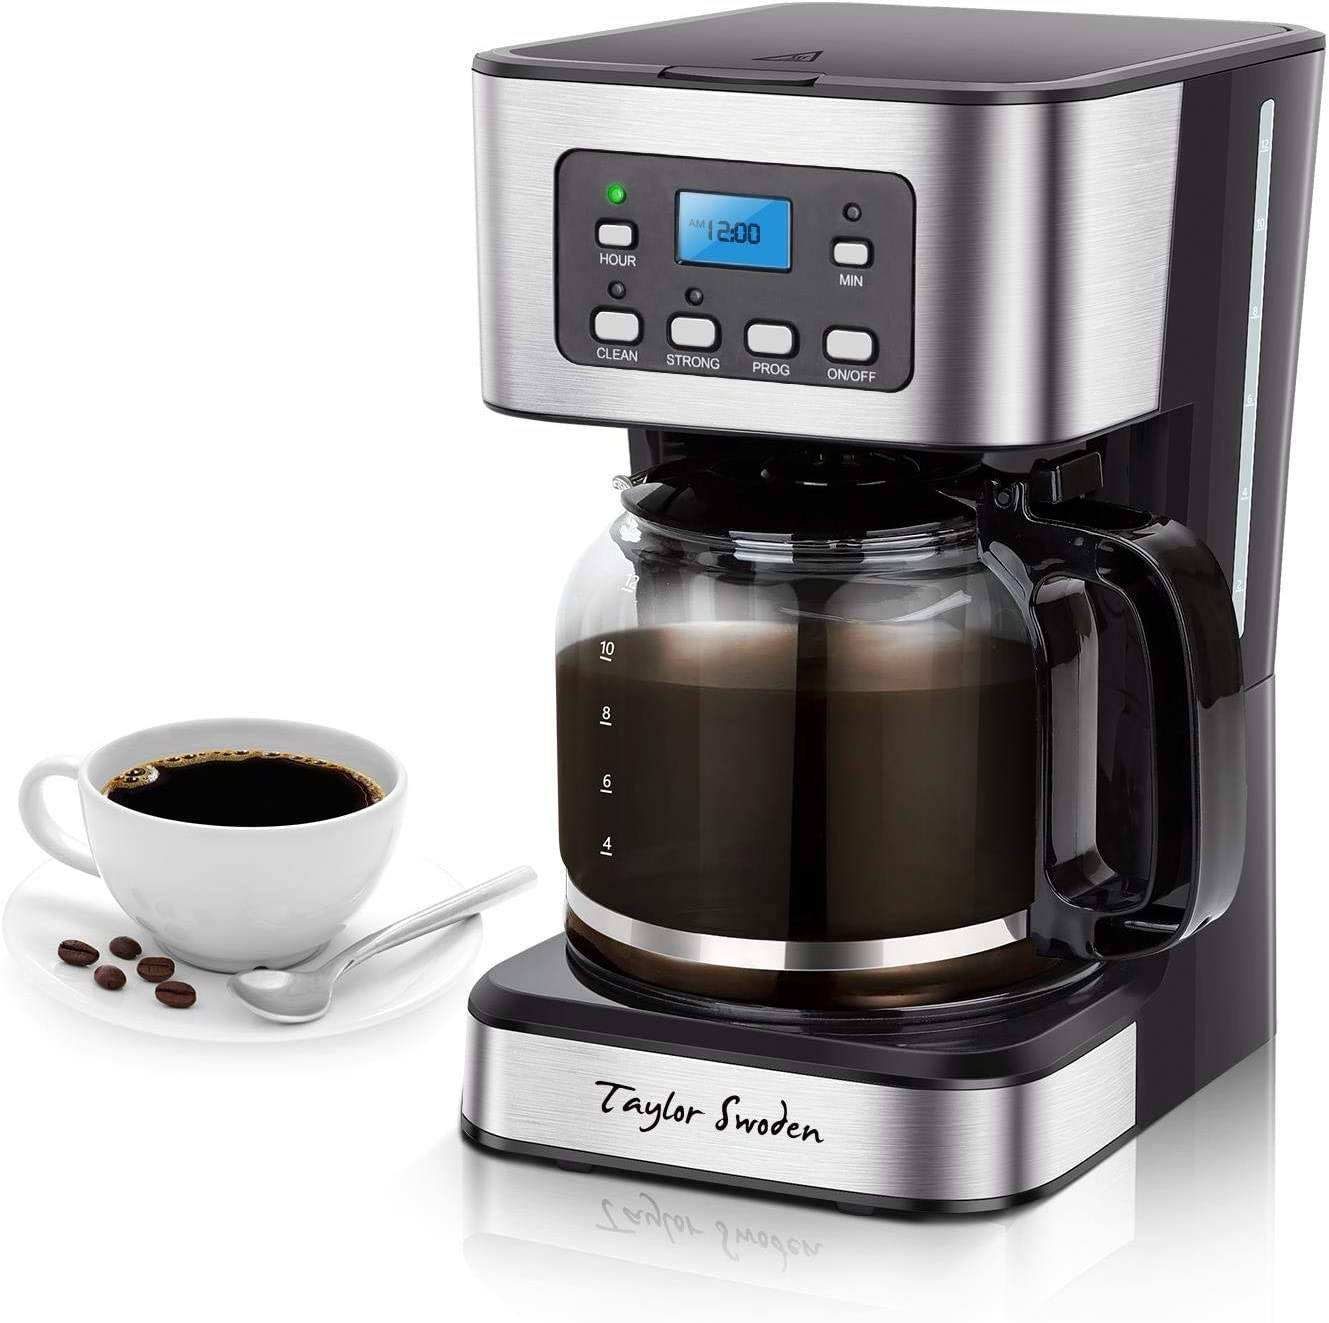 Programmable Coffee Maker 4-12 latest Cups Gl Drip Purchase Machine with